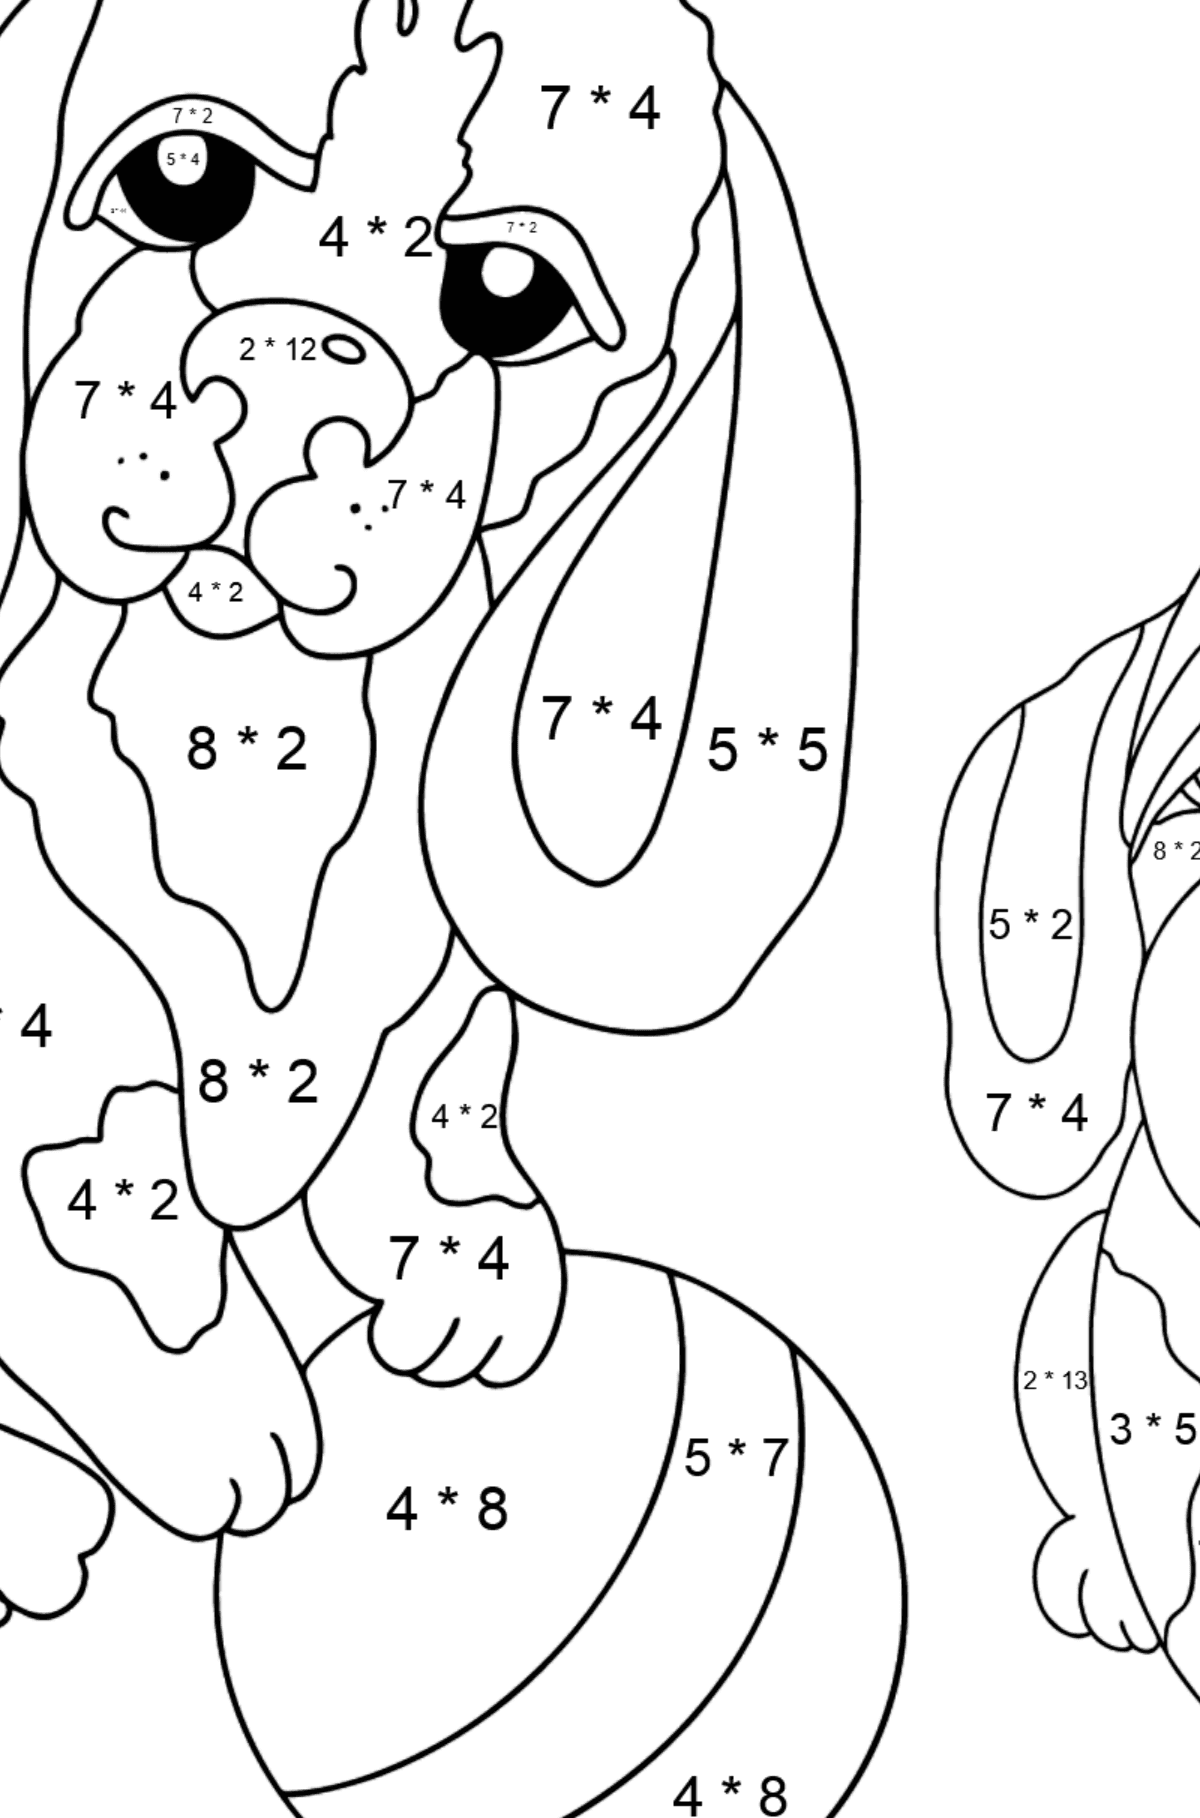 Coloring Page - Dogs are Playing with a Ball - Math Coloring - Multiplication for Kids